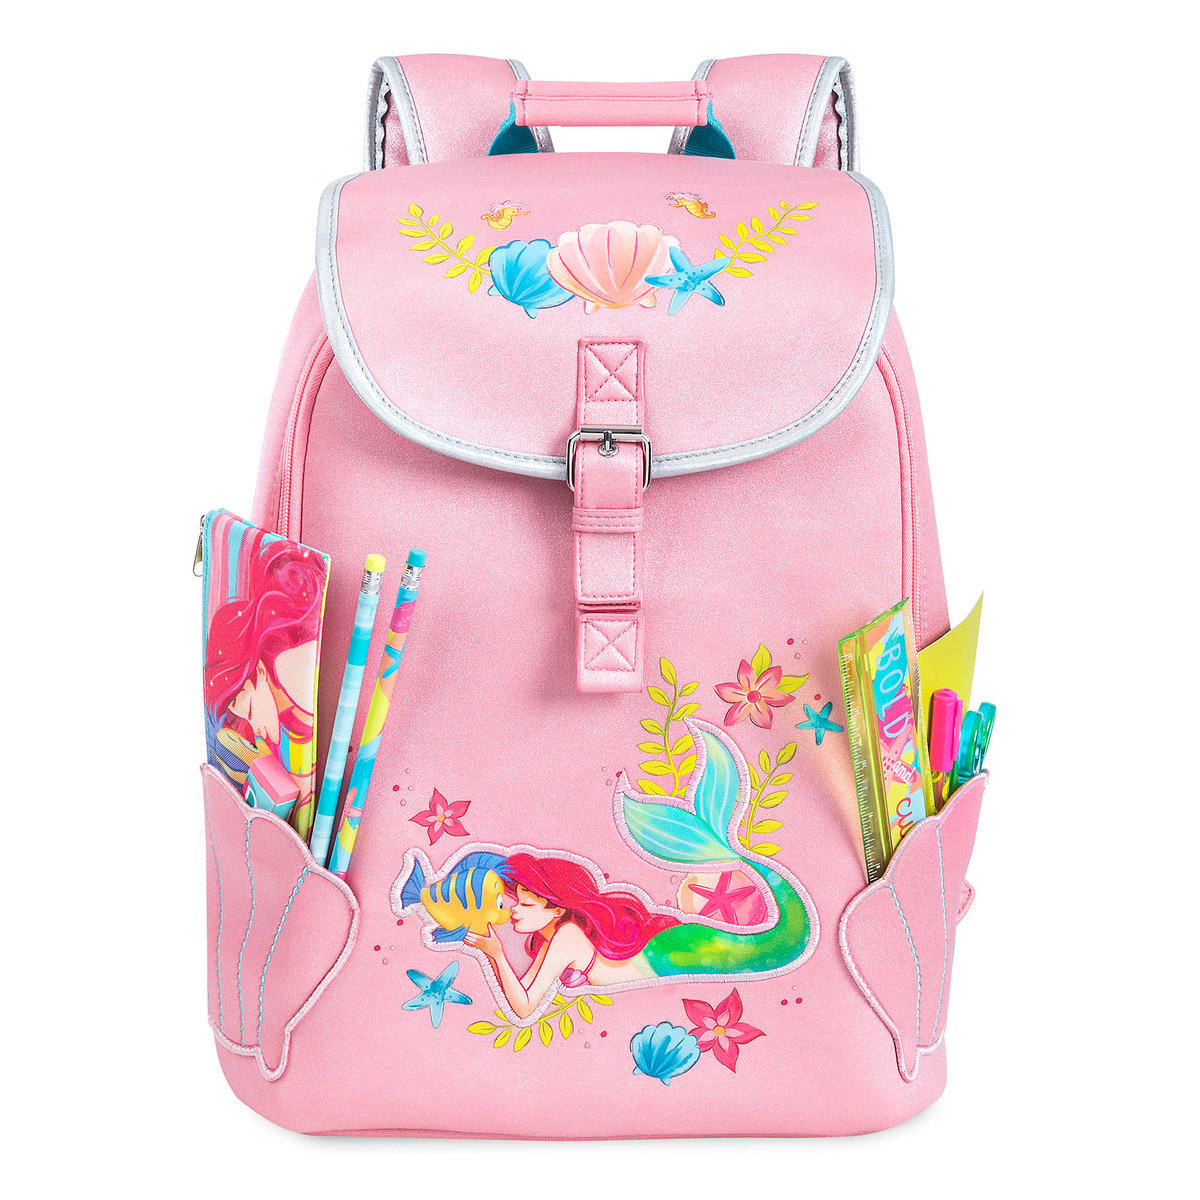 8df787822a7 Product Image of Ariel Backpack - Personalizable   4